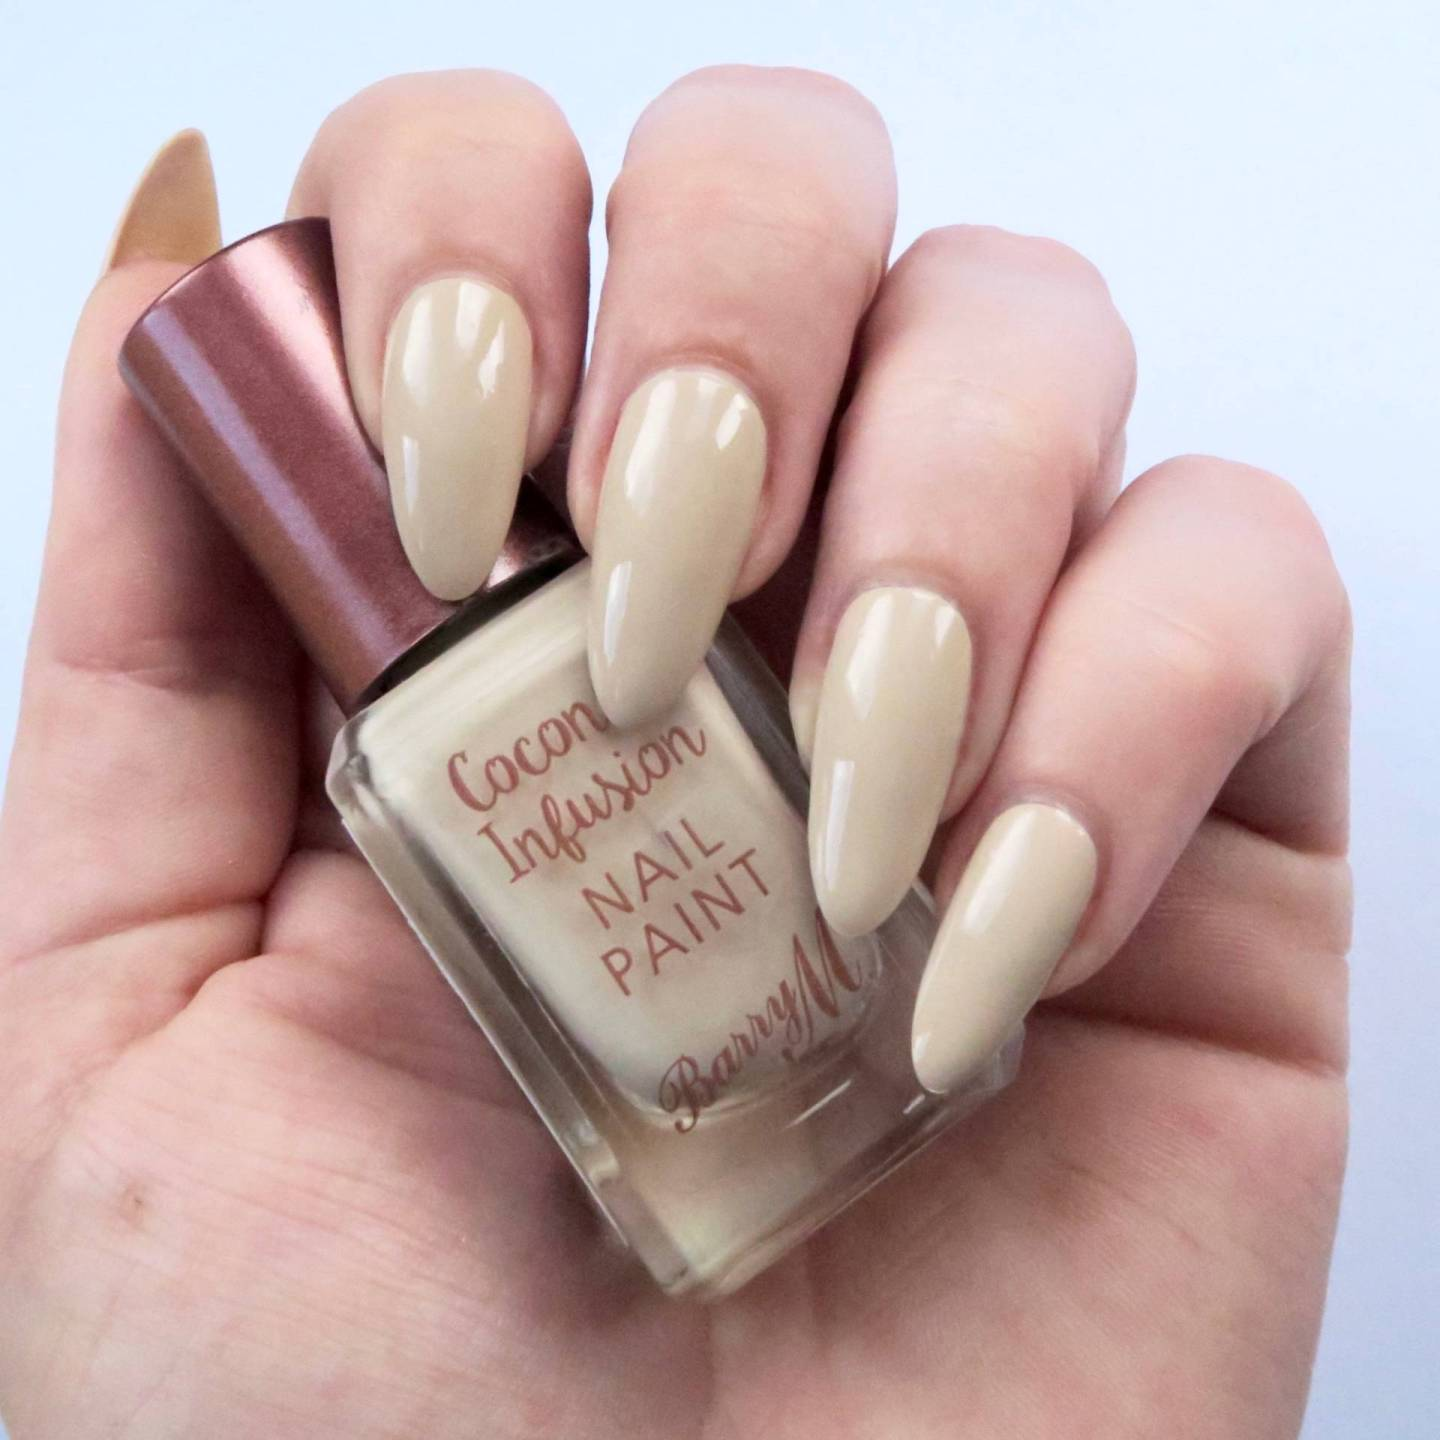 Barry M Nail Paint - Lychee reviews, photos - Makeupalley